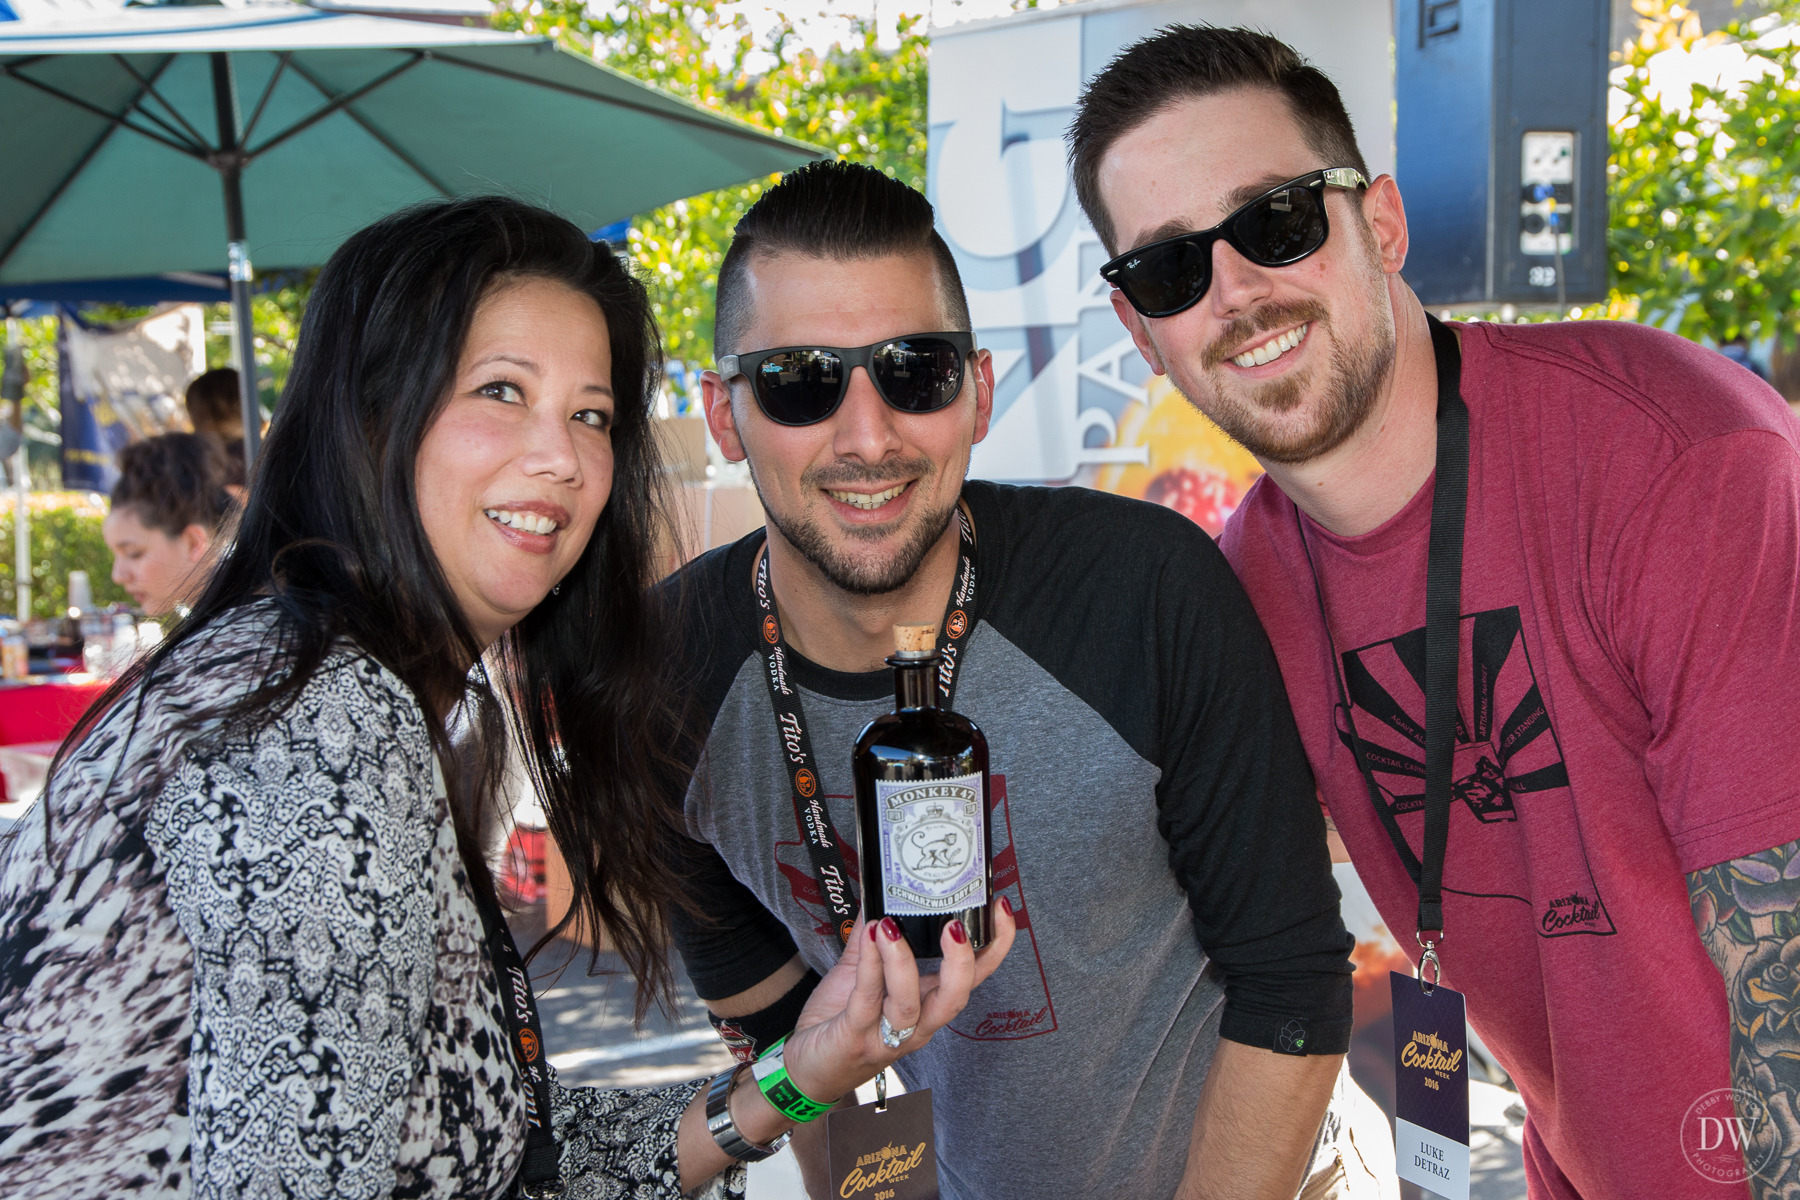 With Joe Intiso, Jr. and Luke Detraz of Southern Wine and Spirits